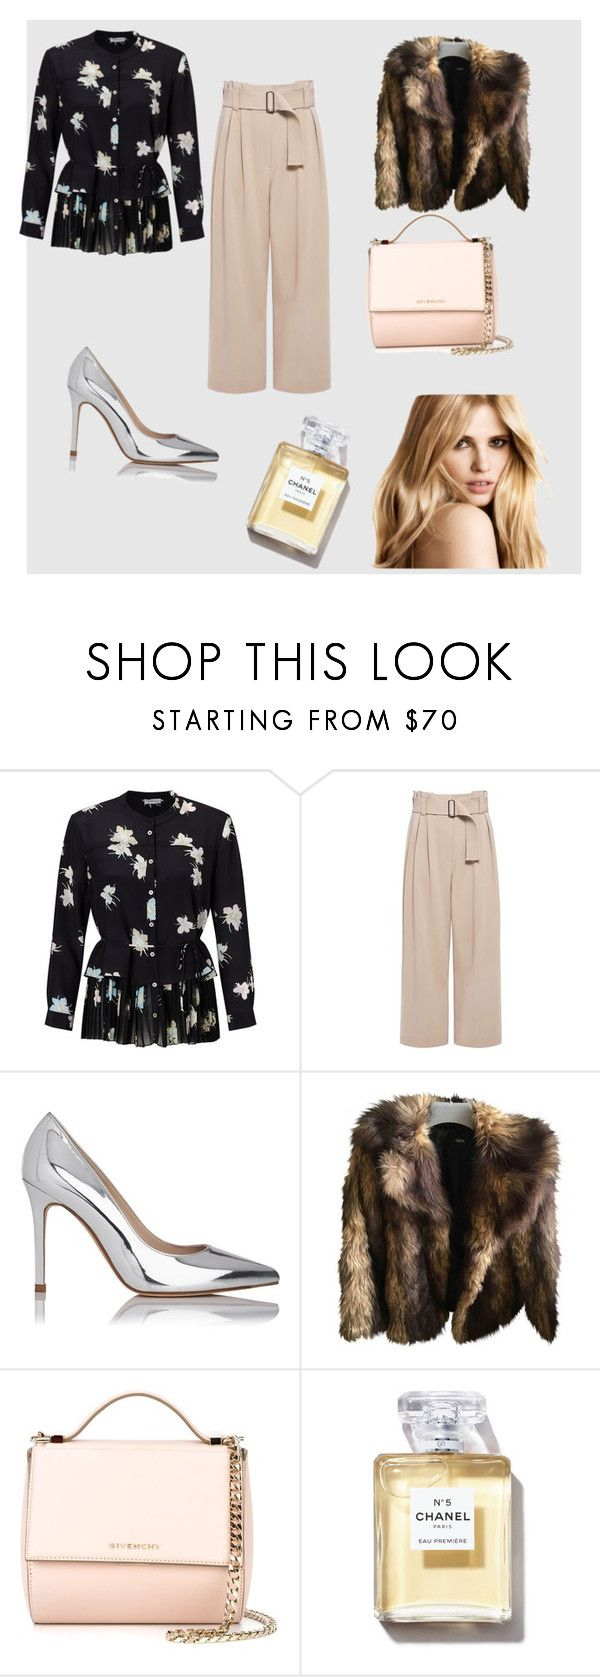 """""""Intalnire speciala 😏"""" by tudoradina ❤ liked on Polyvore featuring Marella, A.L.C., L.K.Bennett, ASOS and Givenchy"""